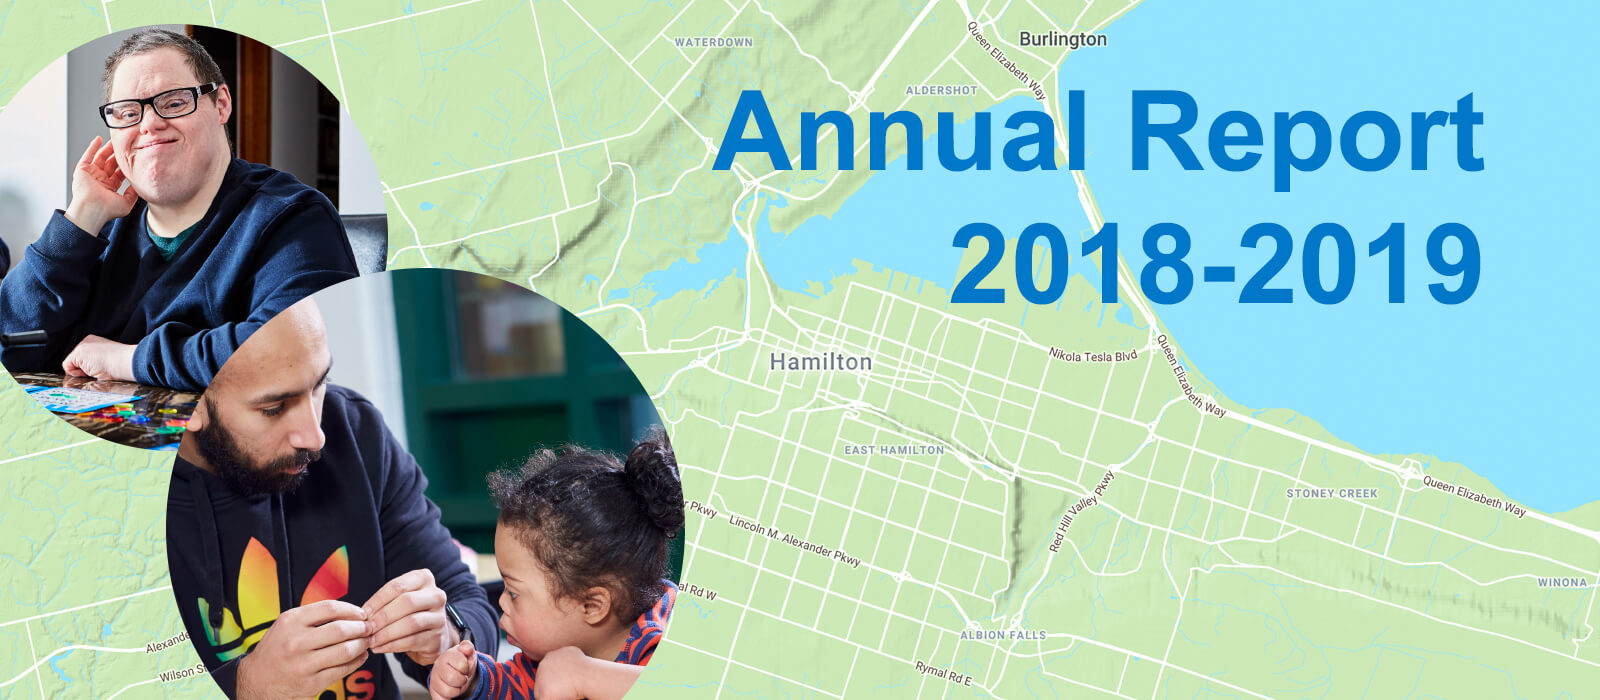 View the CLH Annual Report for 2018-2019 Online.